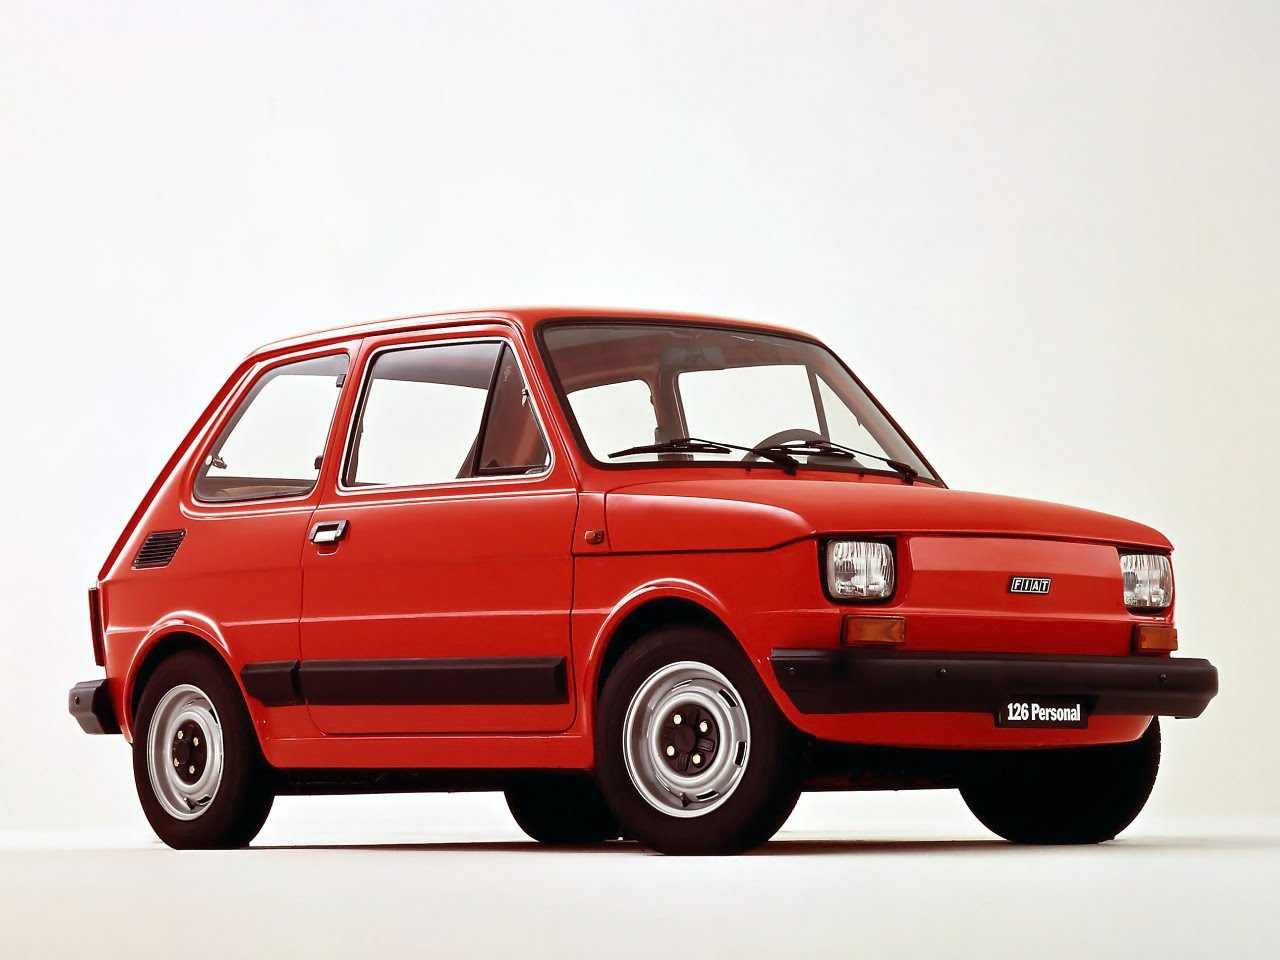 Fiat 126 Personal 4 (1977)